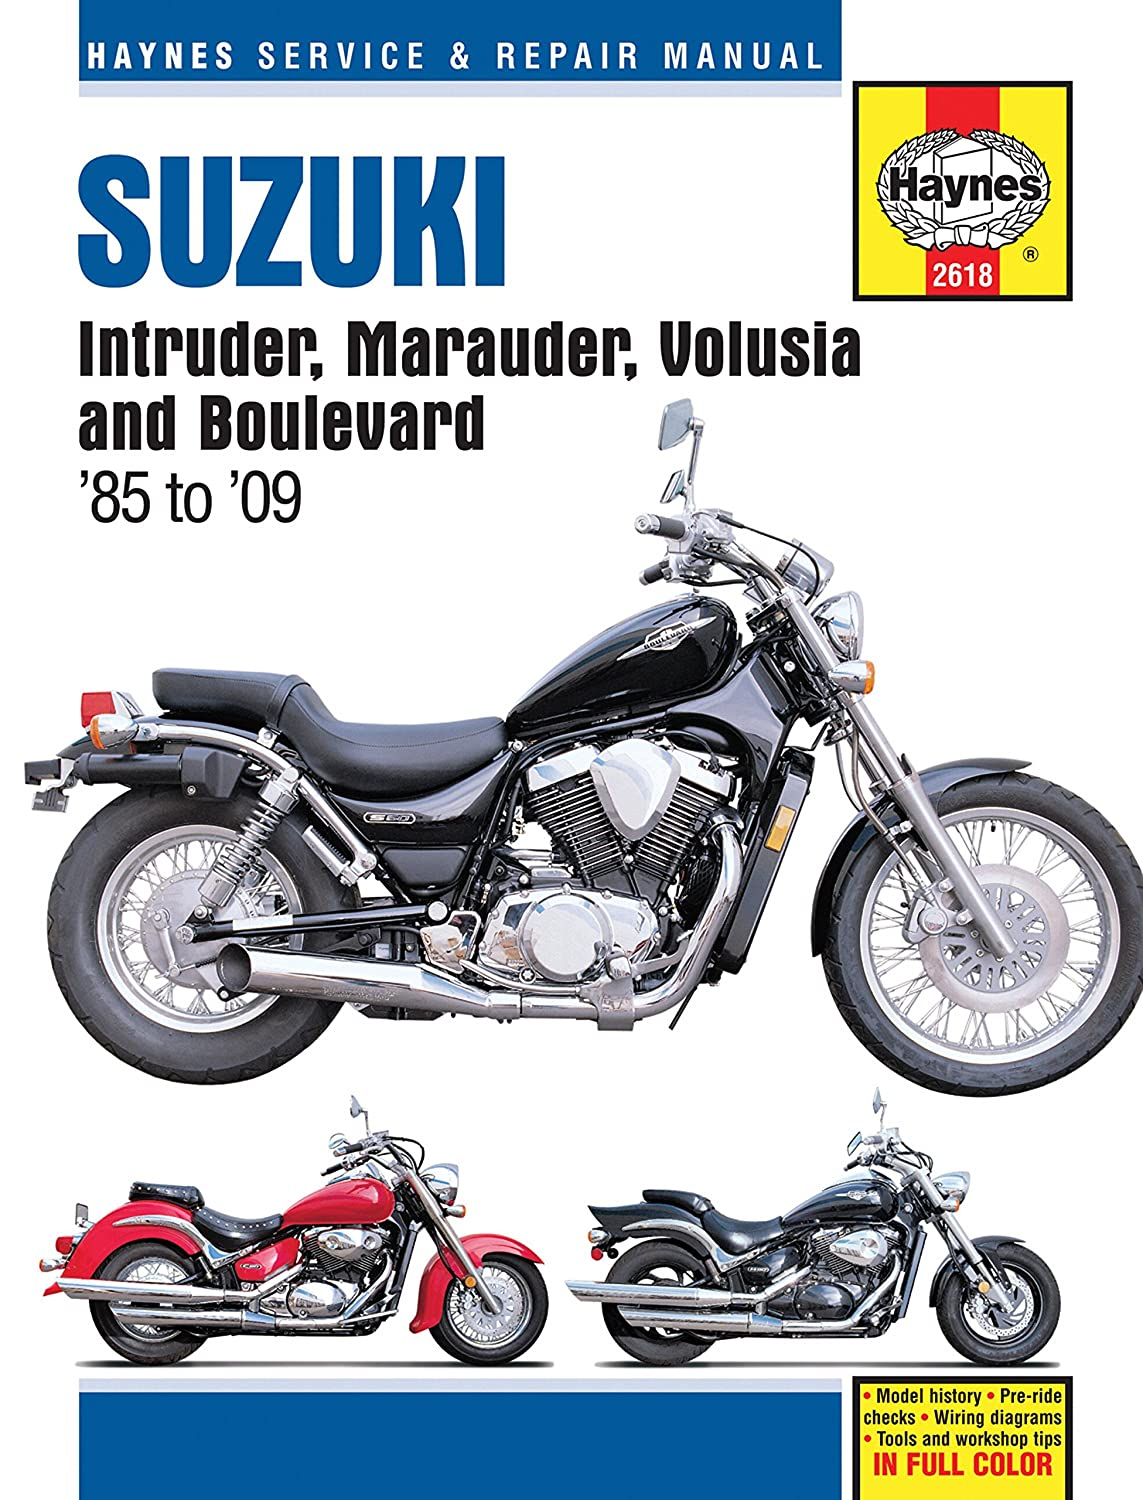 91BMHOJfCkL._SL1500_ amazon com haynes motorcycle repair manual 2618 automotive 1998 suzuki intruder 1500 wiring diagram at panicattacktreatment.co